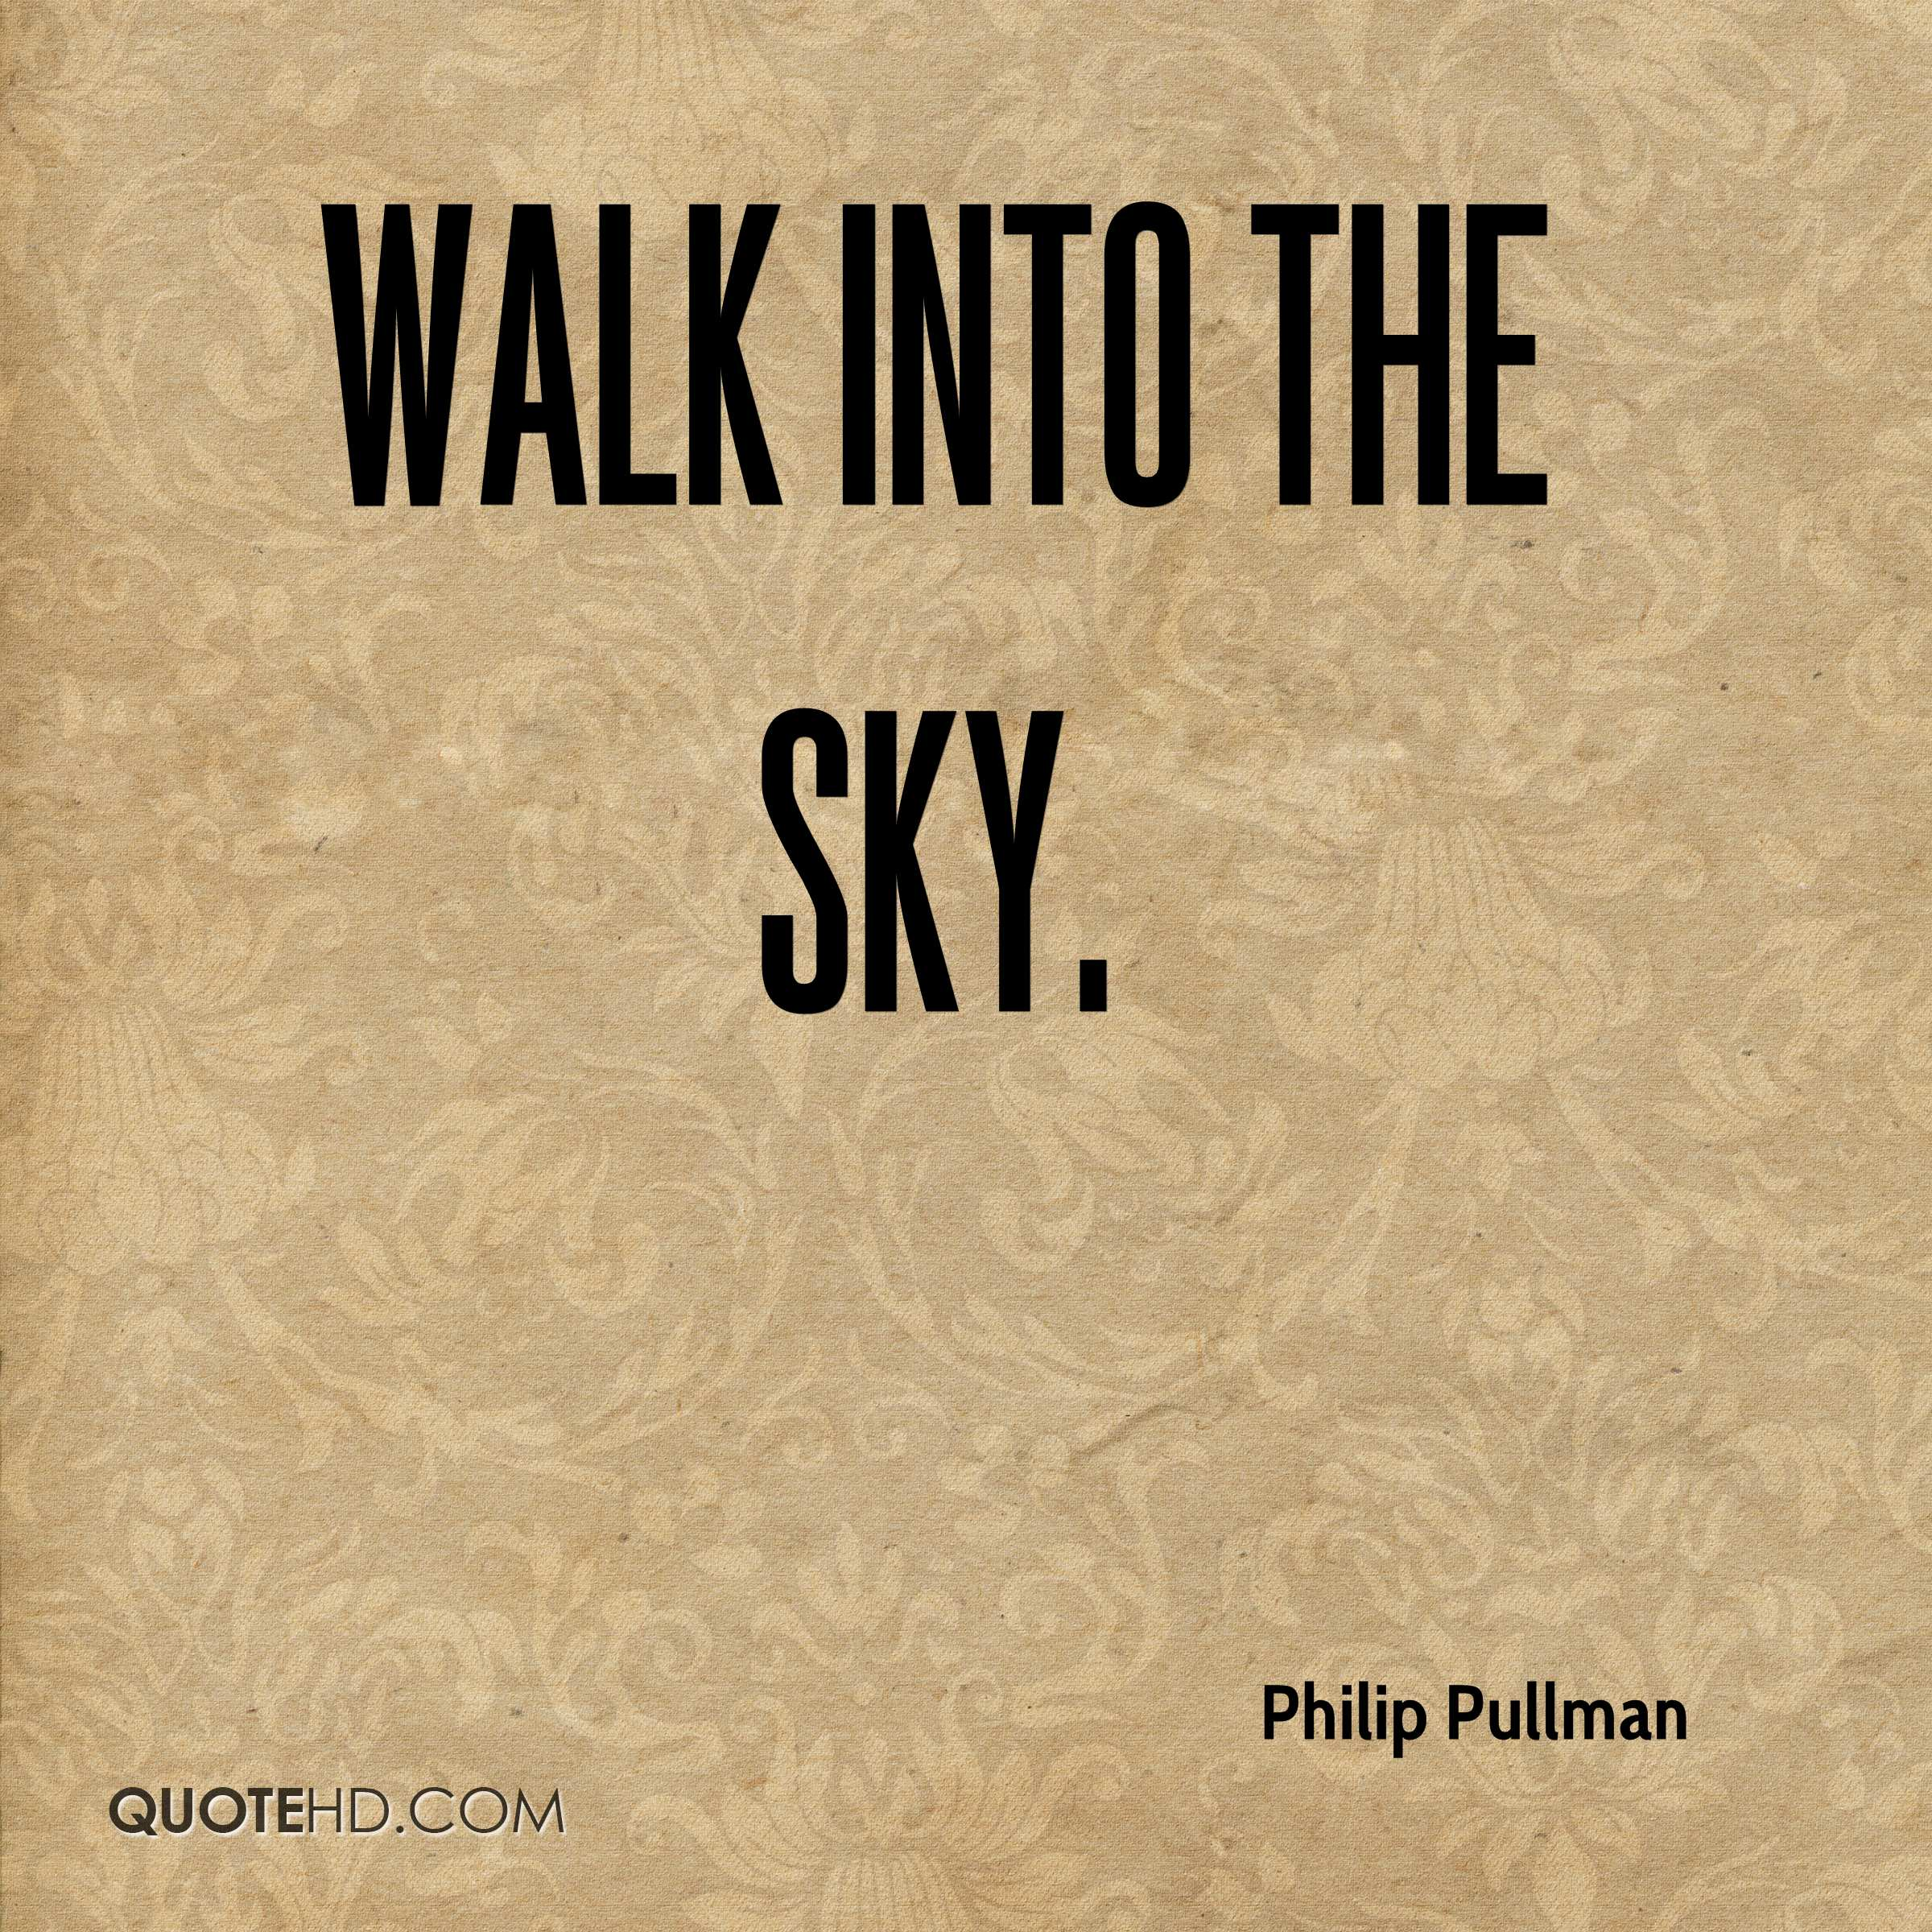 Philip Pullman Quotes 0 Walk Into The Sky